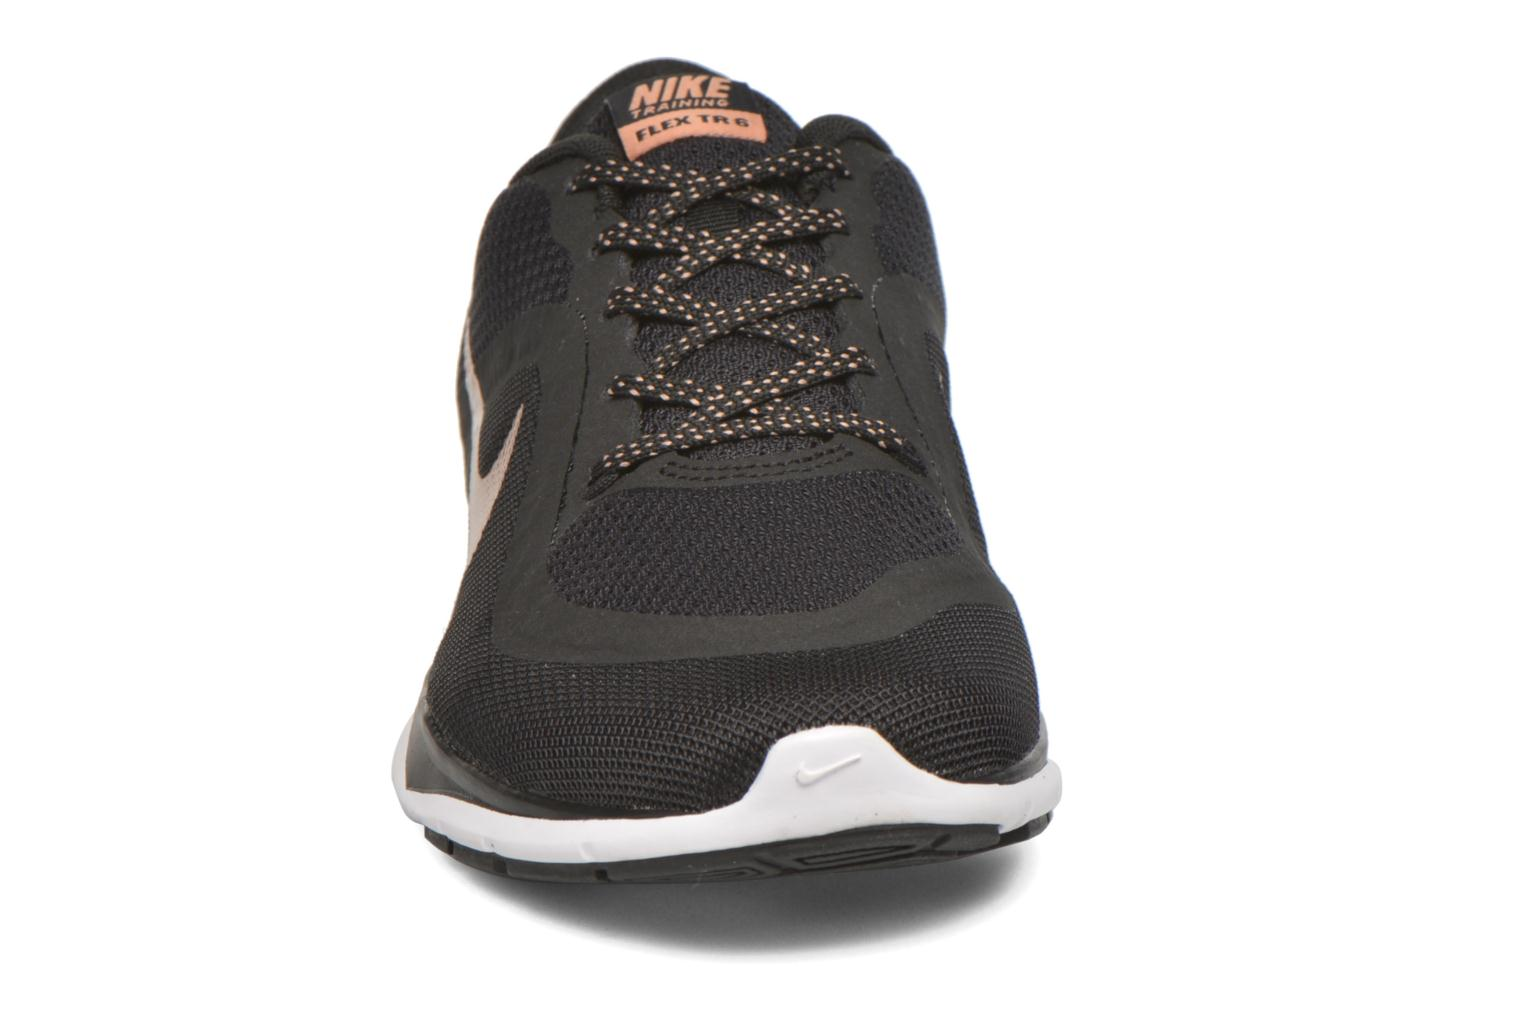 Wmns Nike Flex Trainer 6 Black/Mtlc Red Bronze-White